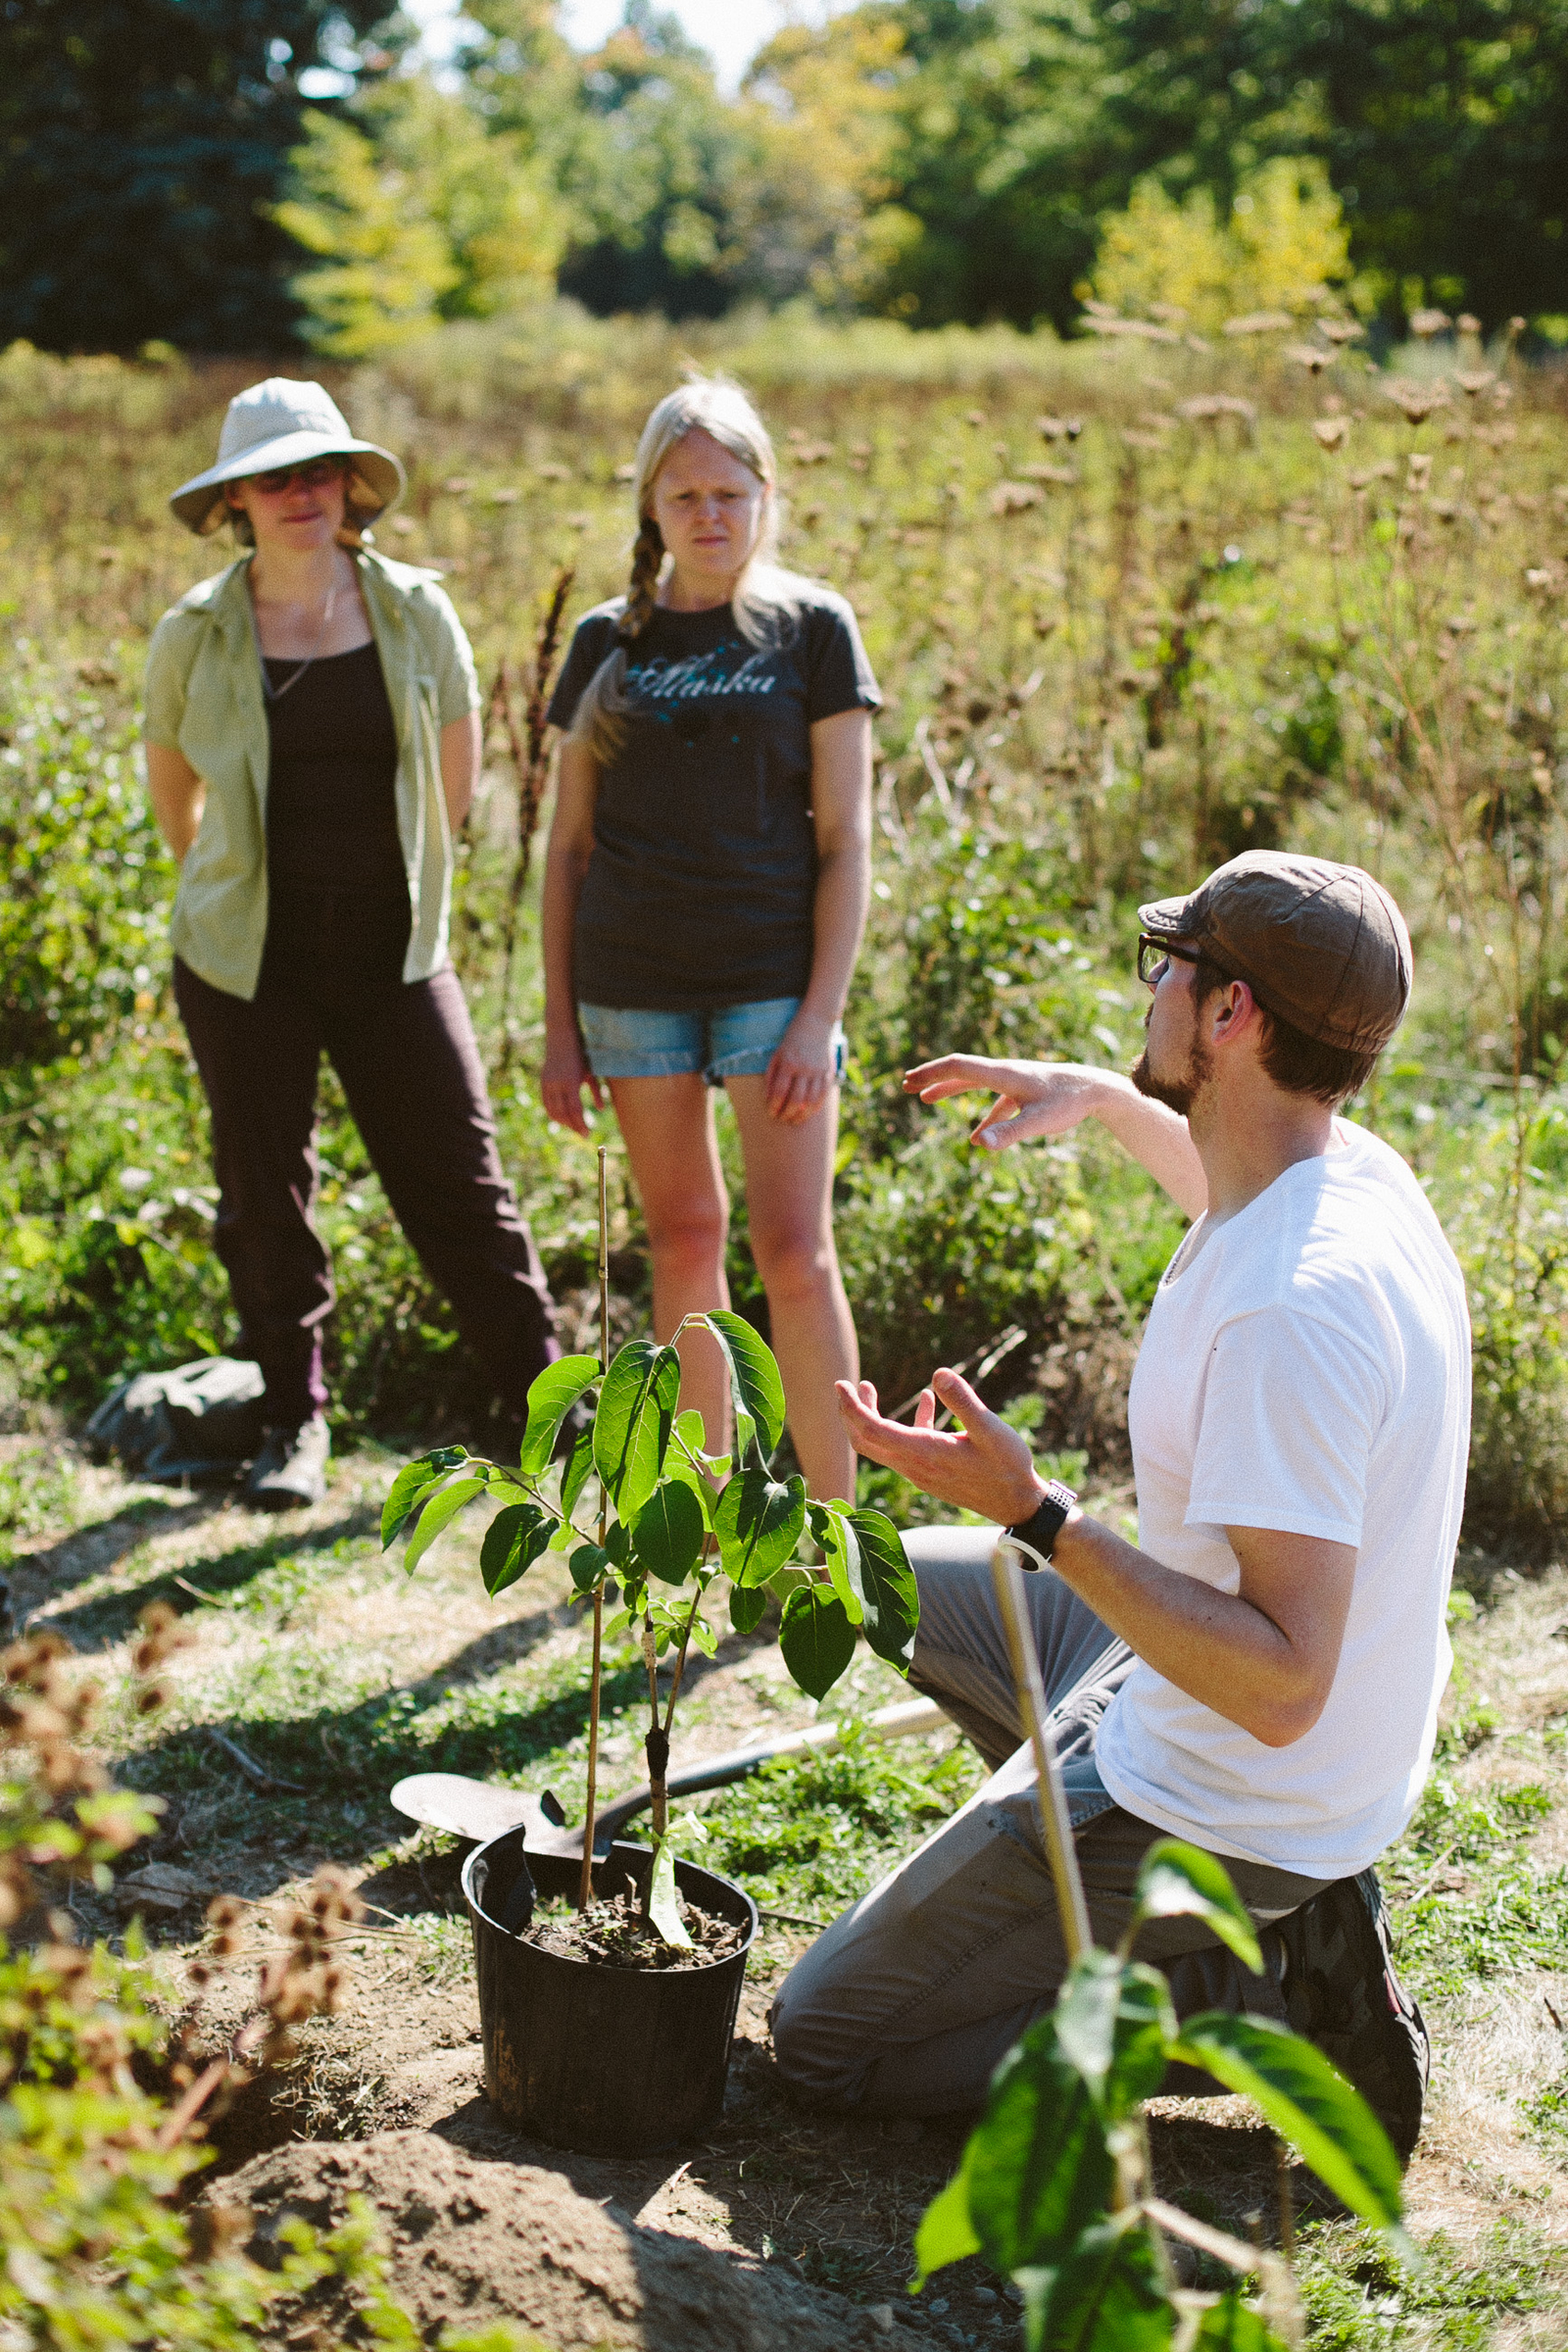 tell-bostonfoodforest-42.jpg